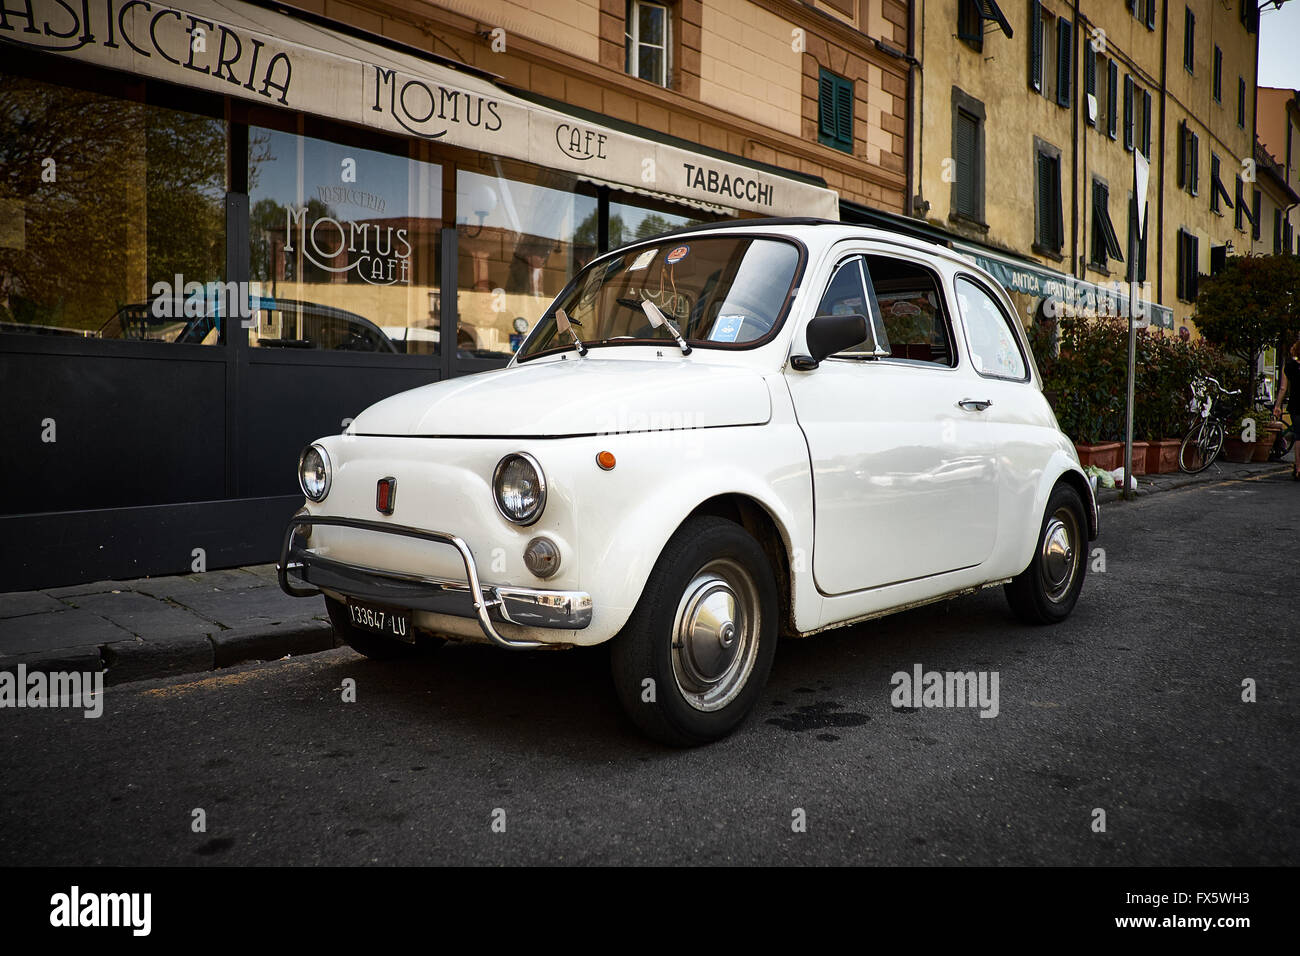 A Classic white Fiat 500 L Lusso (1968 - 1972) car parked in front of an Italian cafe, Tabacci and Pasticceria - Stock Image